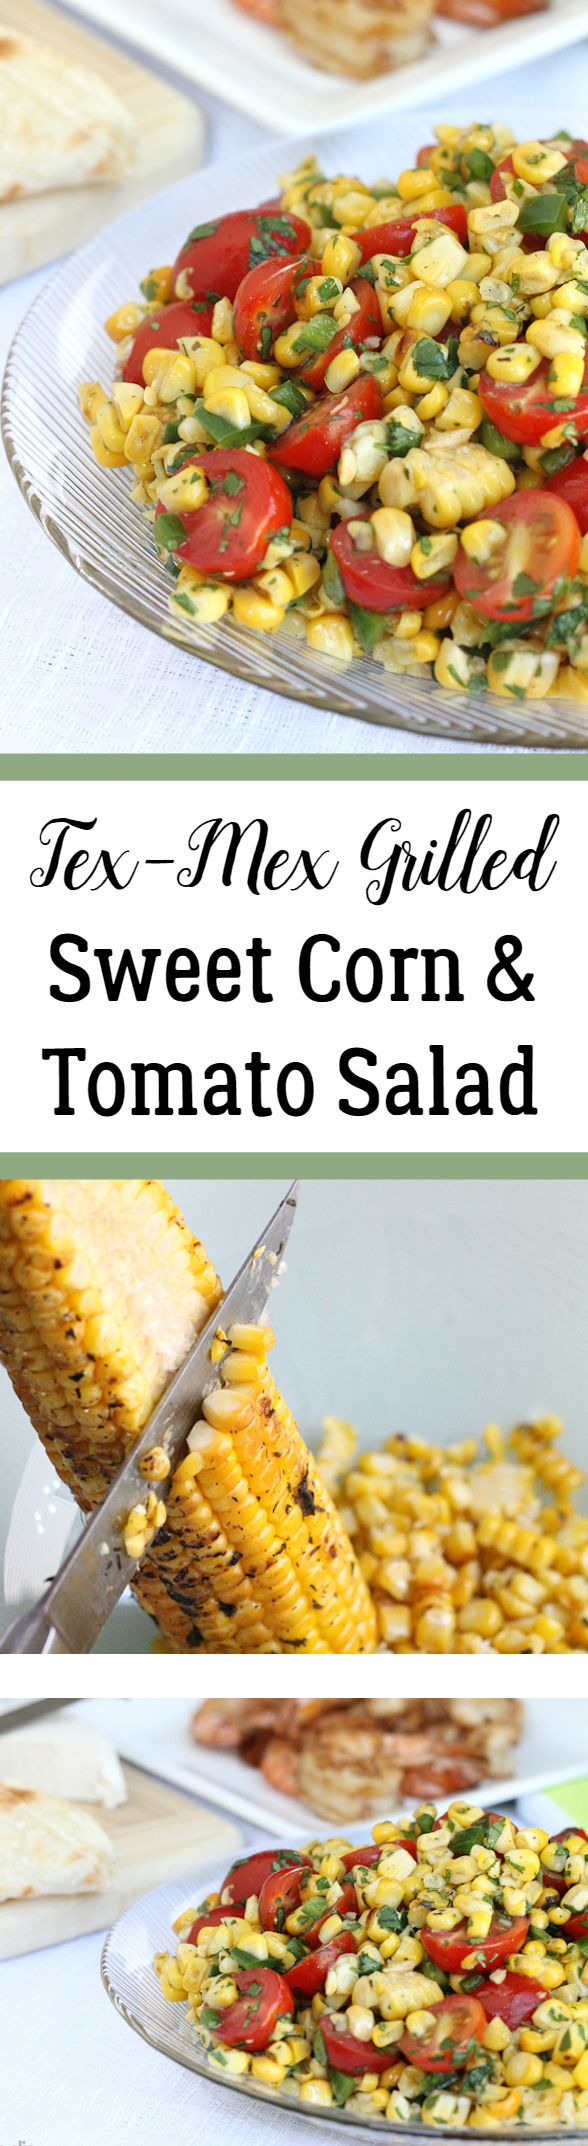 Tex-Mex Grilled Sweet Corn & Tomato Salad